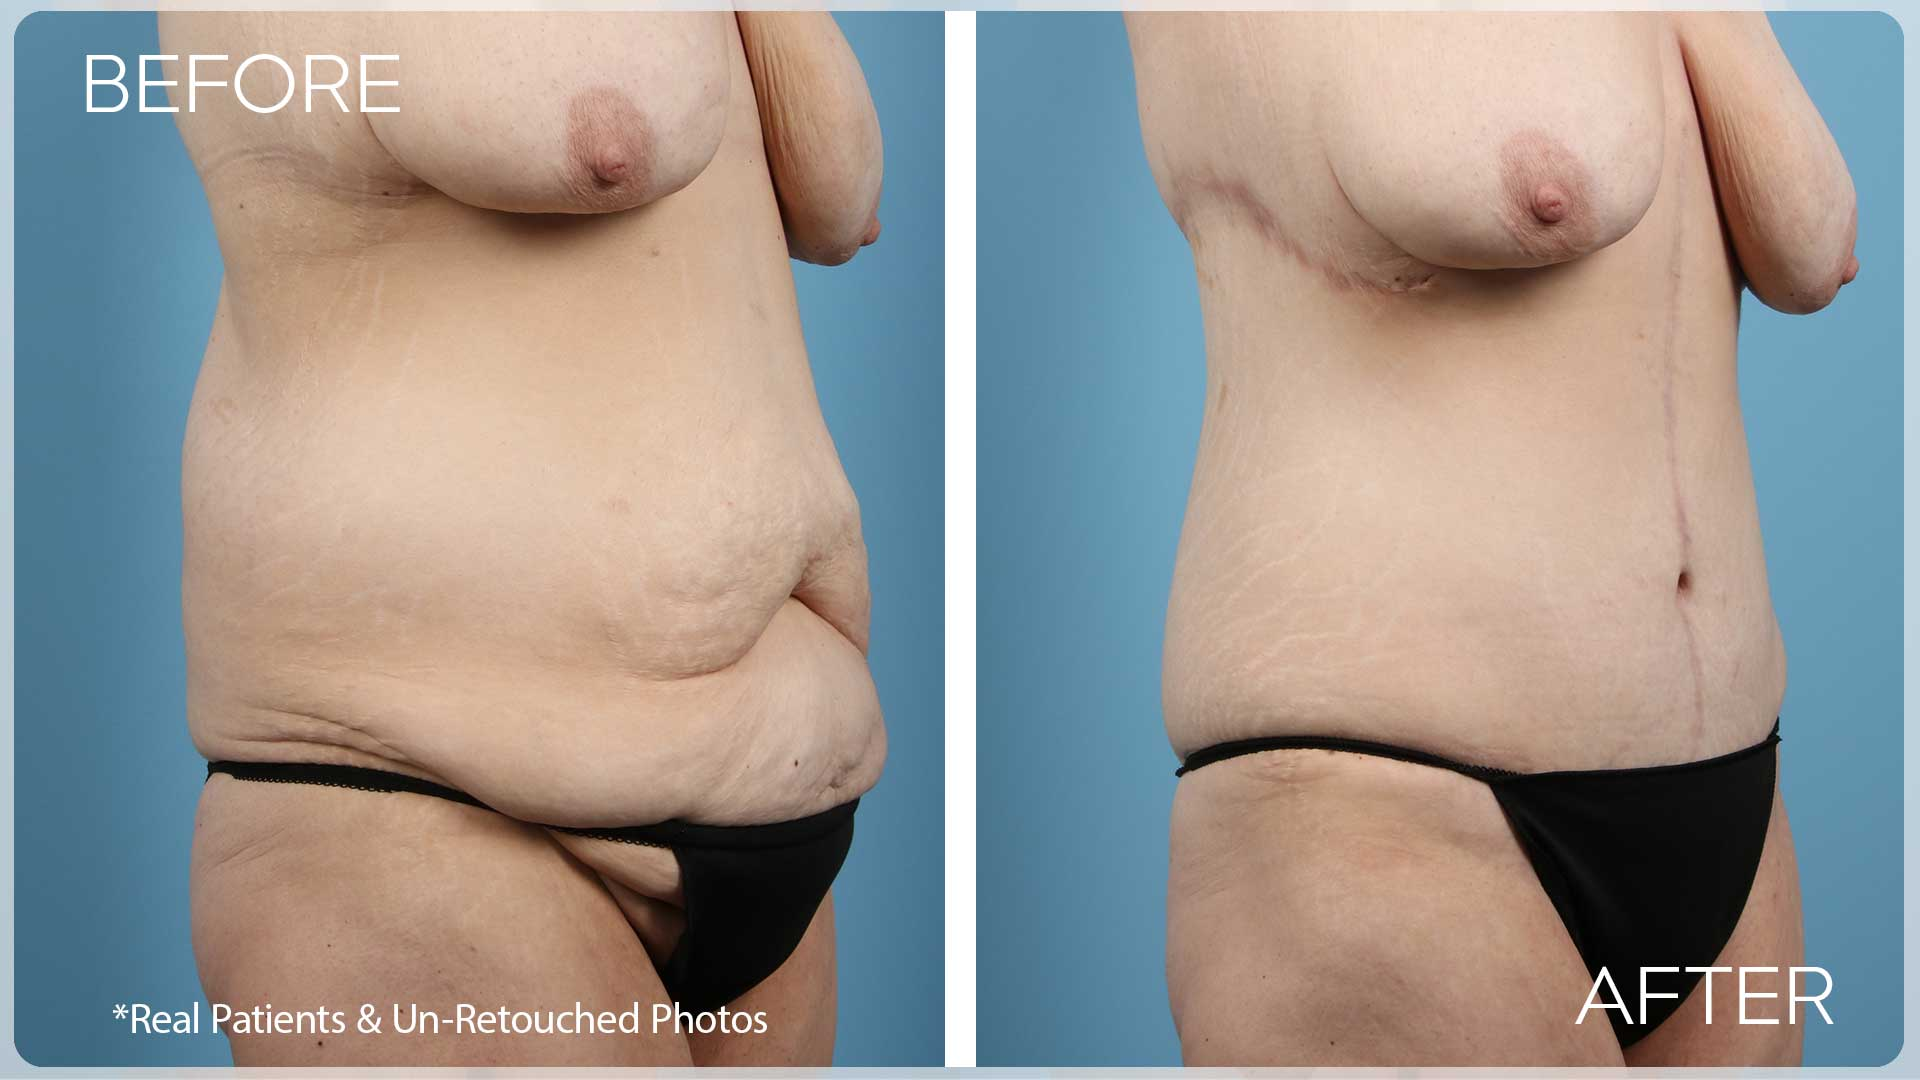 237-Before-After-oblique